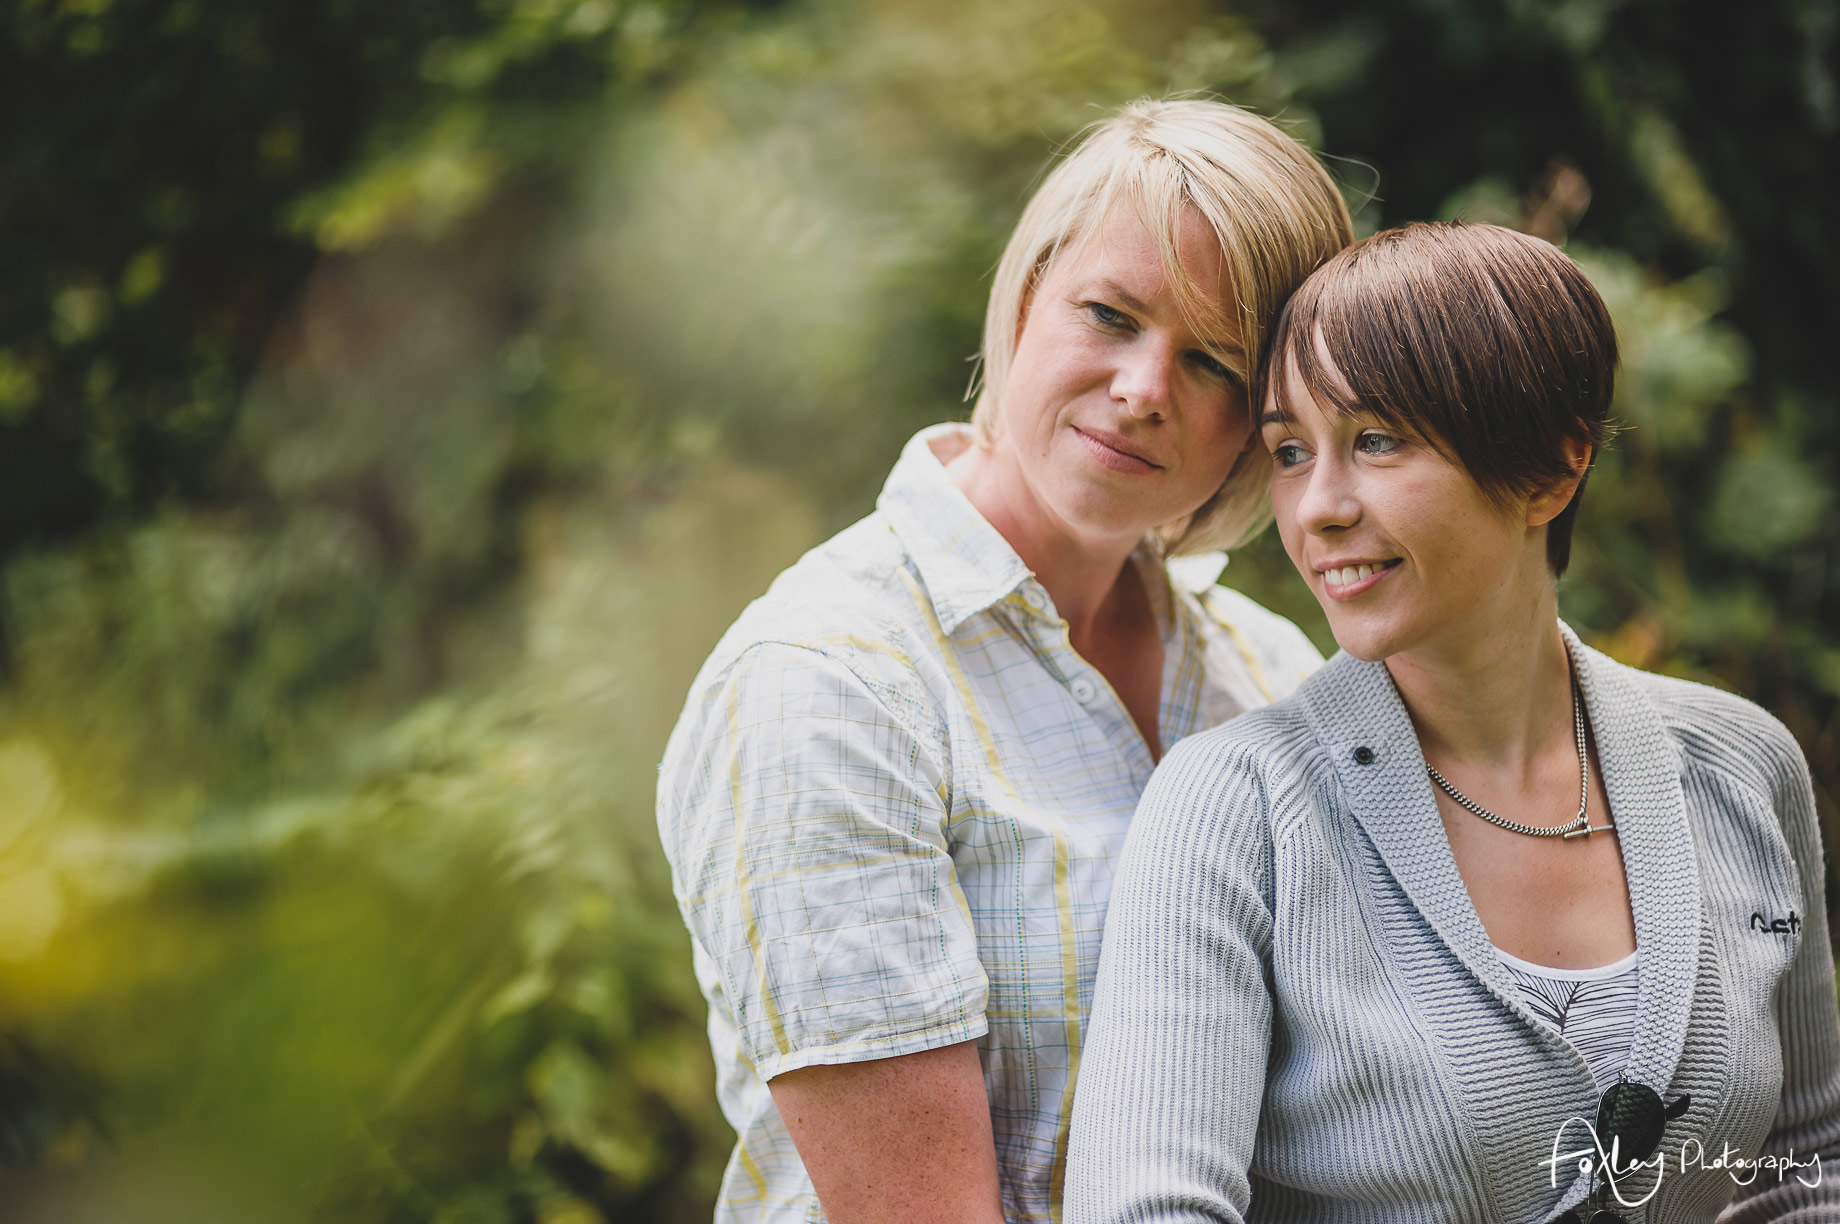 Becky-and-Amy-Pre-Wedding-Portraits-at-Denzell-Gardens-019